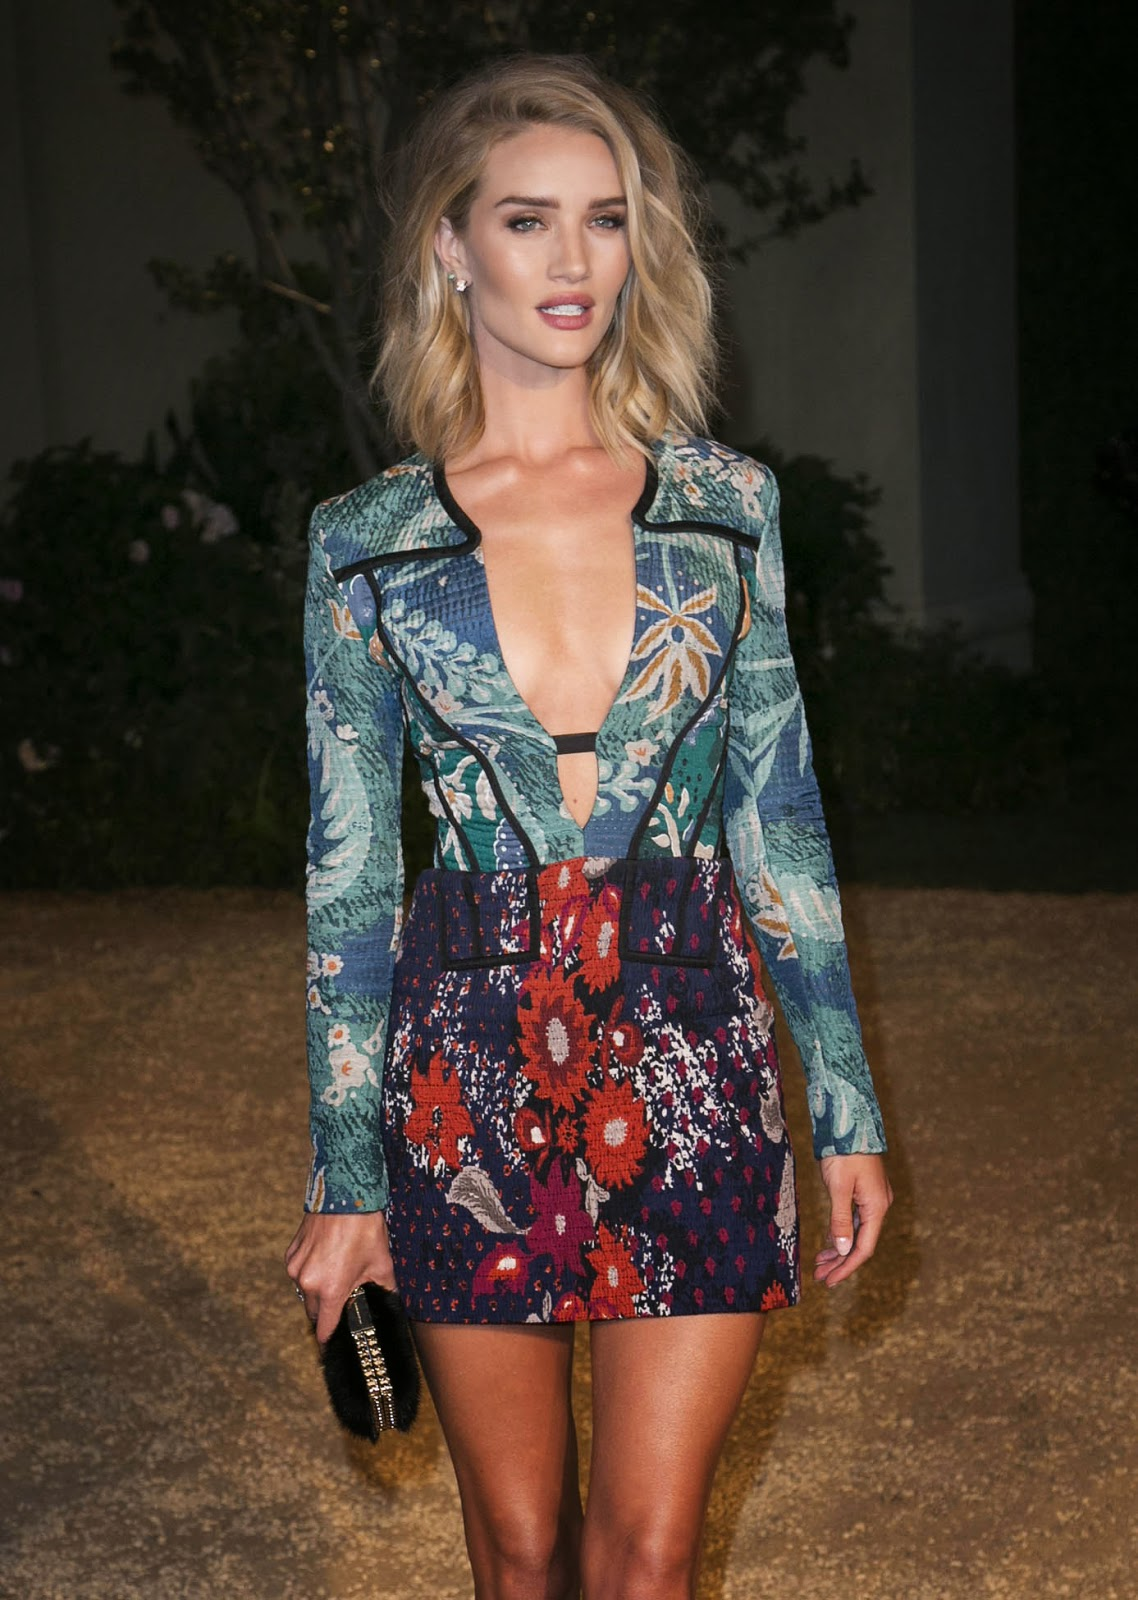 Rosie Huntington-Whiteley Really Knows How To Dress